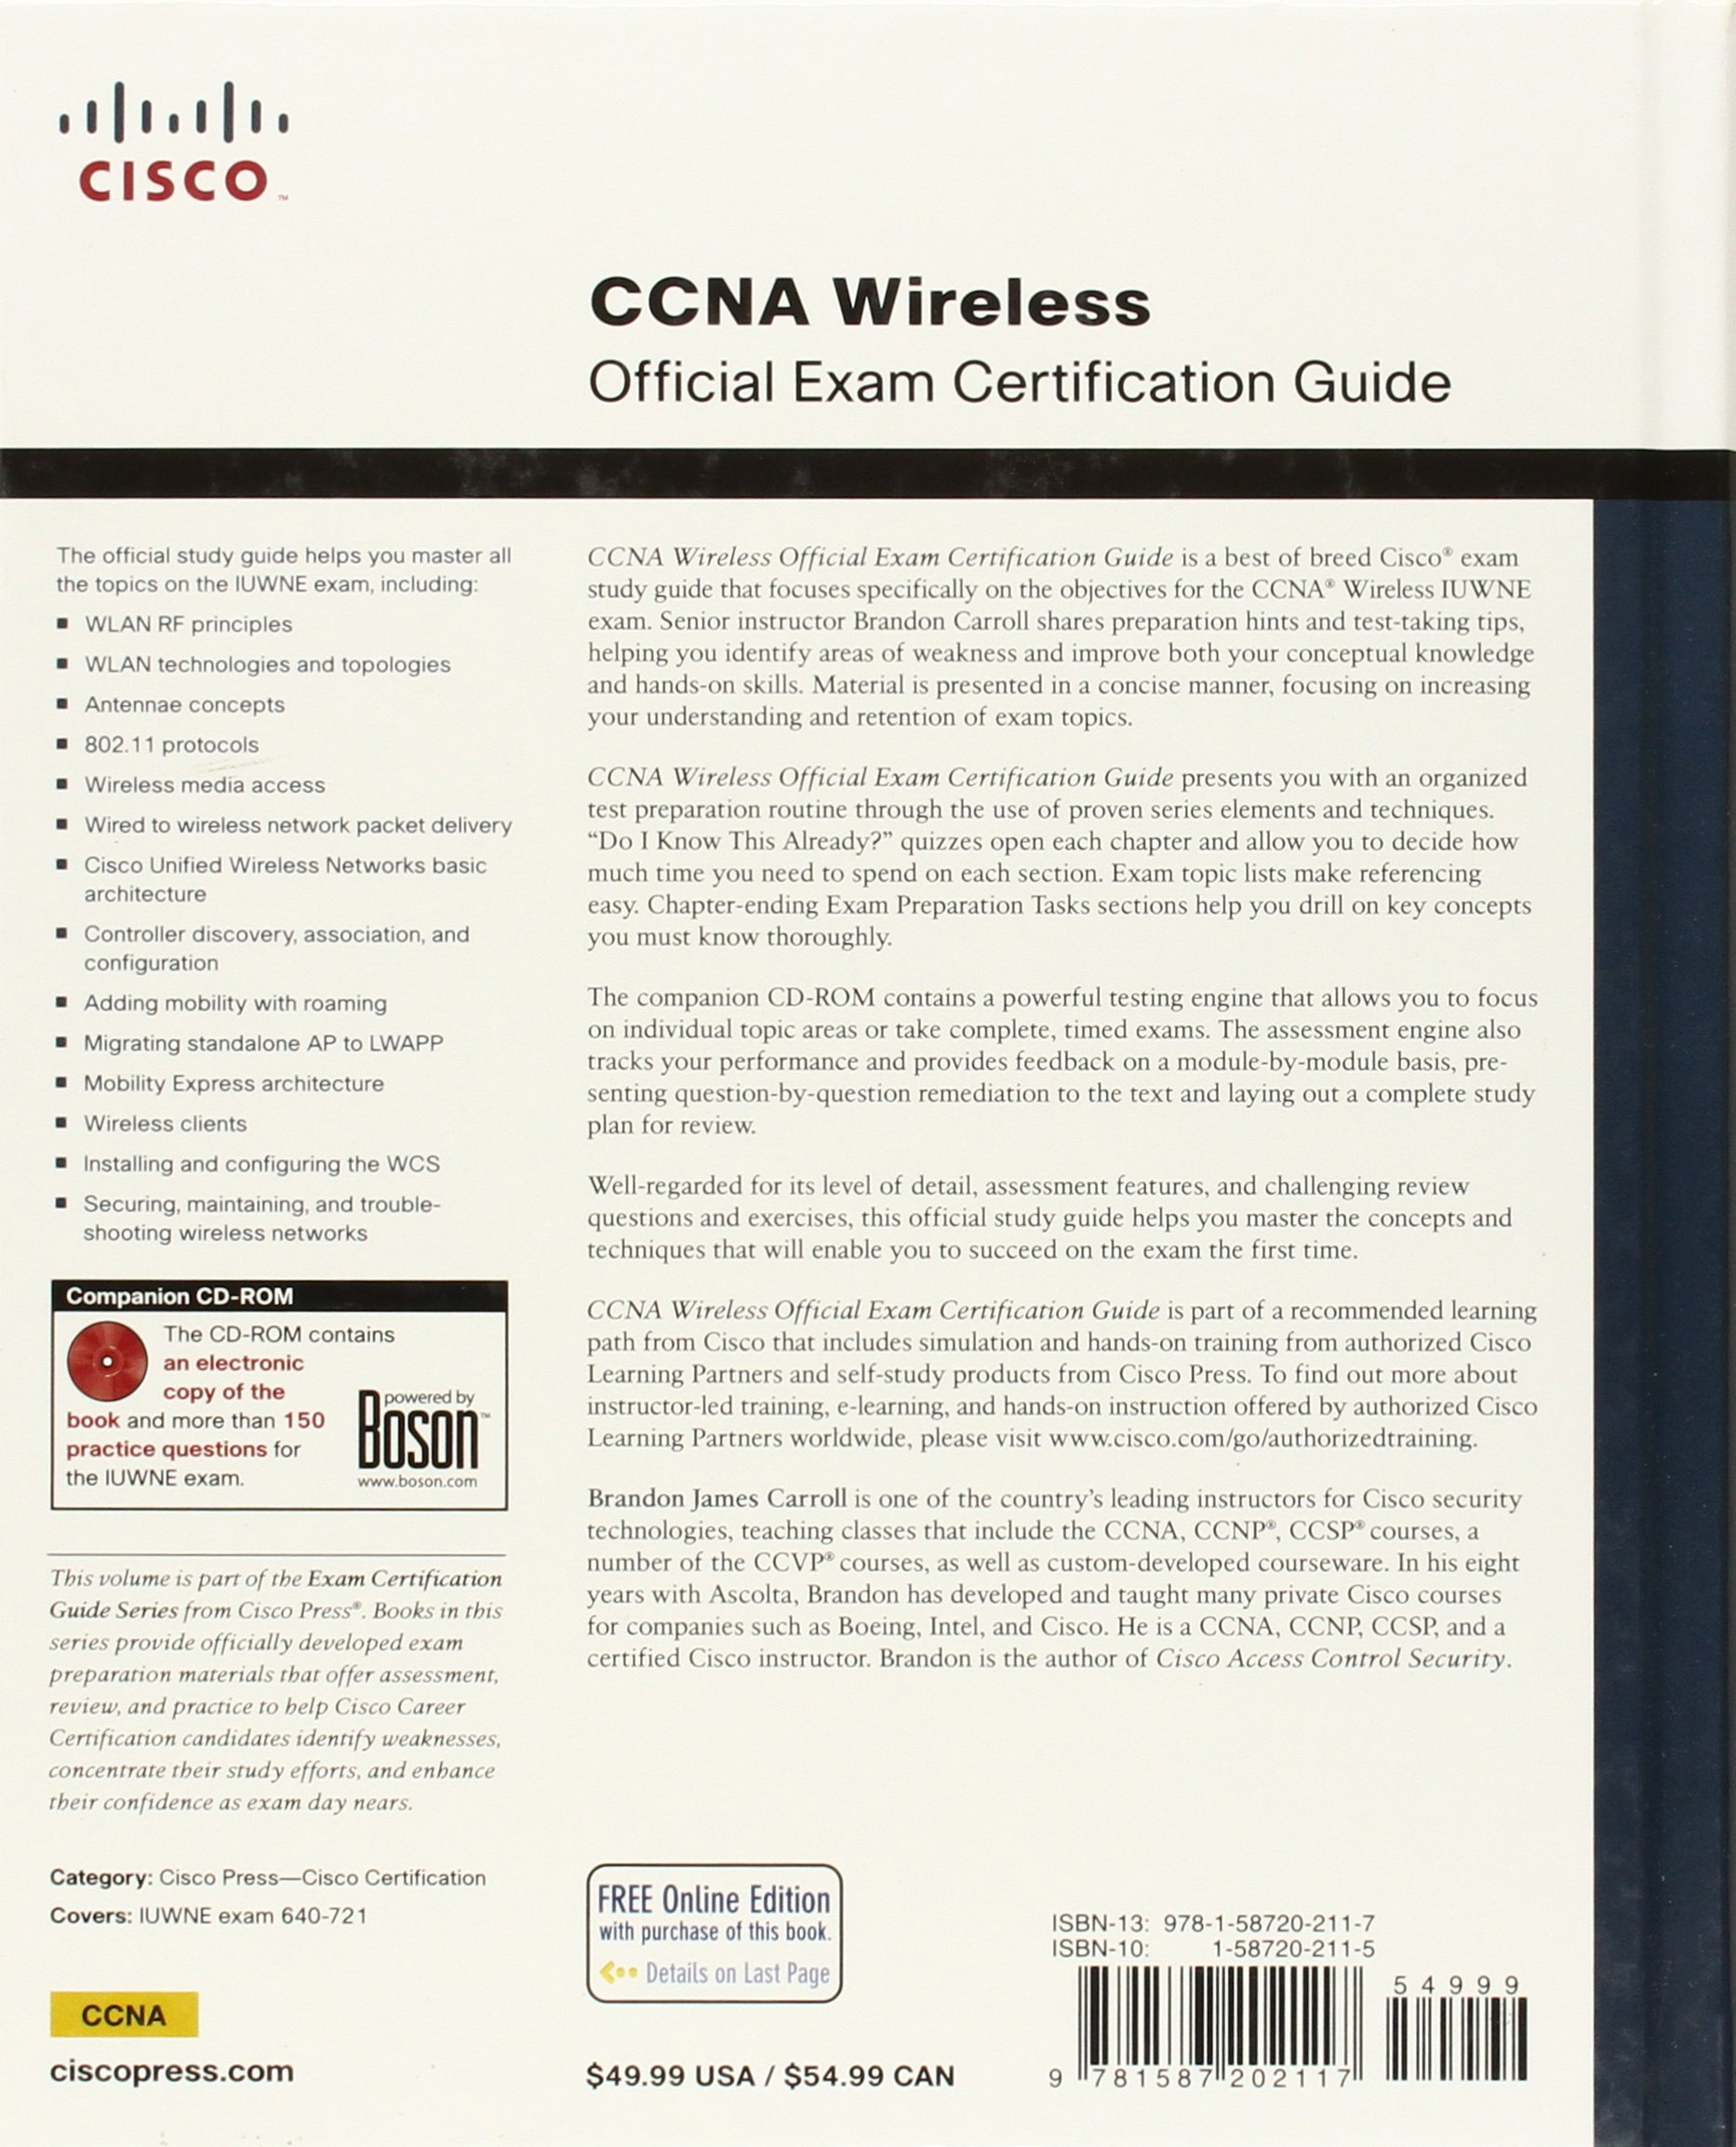 Buy ccna wireless official exam certification guide ccna iuwne buy ccna wireless official exam certification guide ccna iuwne 640 721 official exam certification gd book online at low prices in india ccna wireless 1betcityfo Gallery